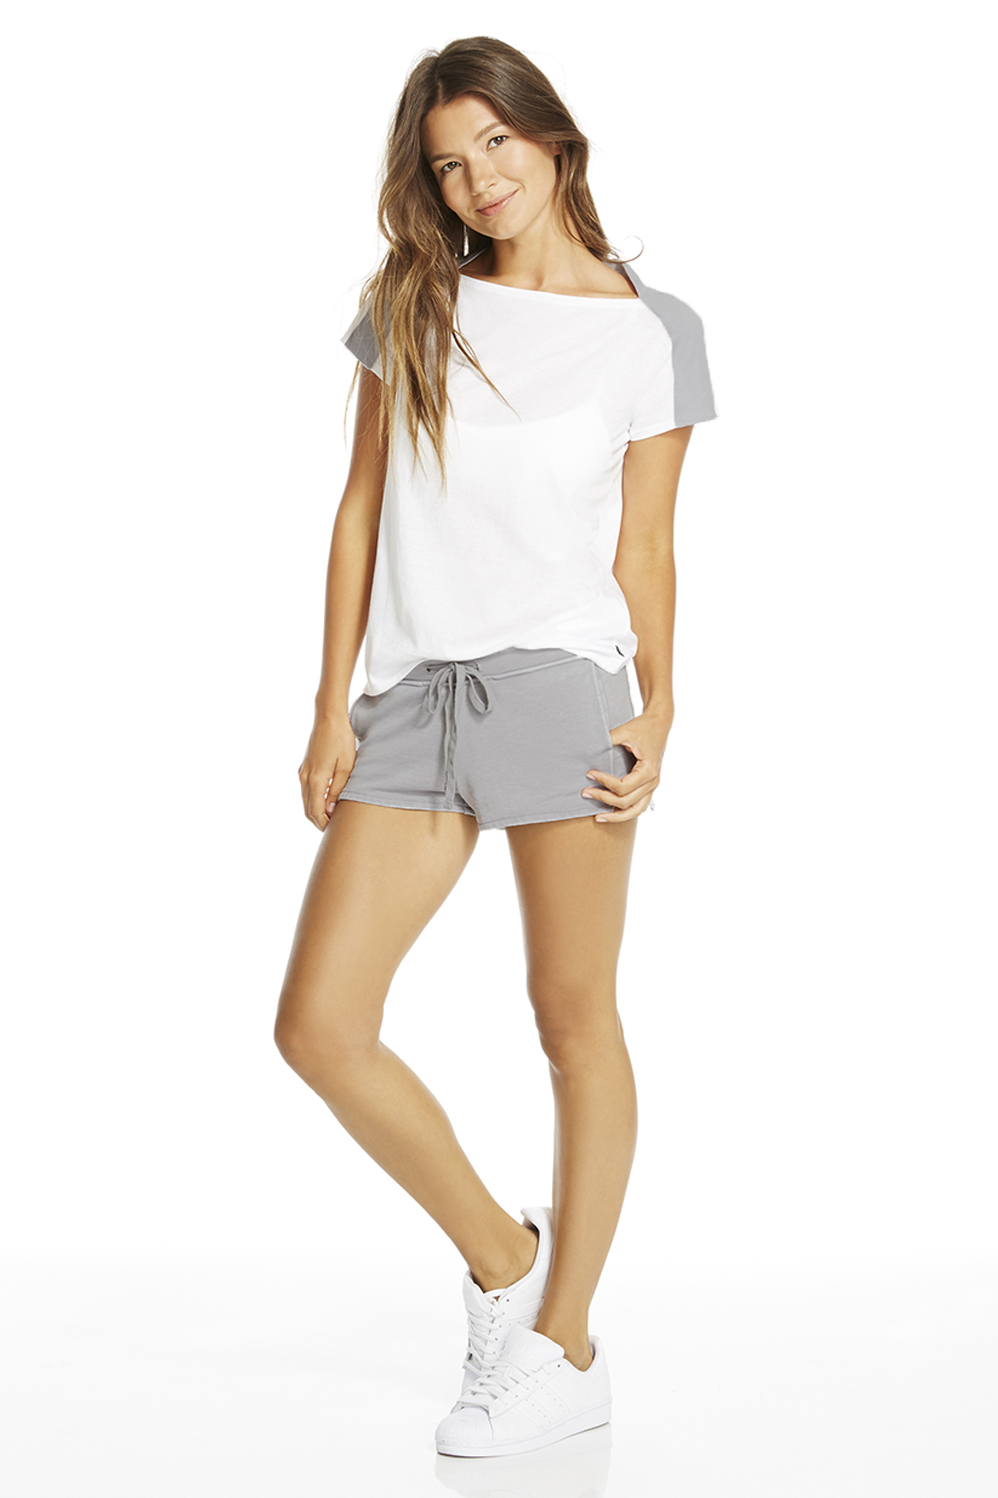 Waverly outfit get great athletic wear at fabletics - Ropa para casa ...